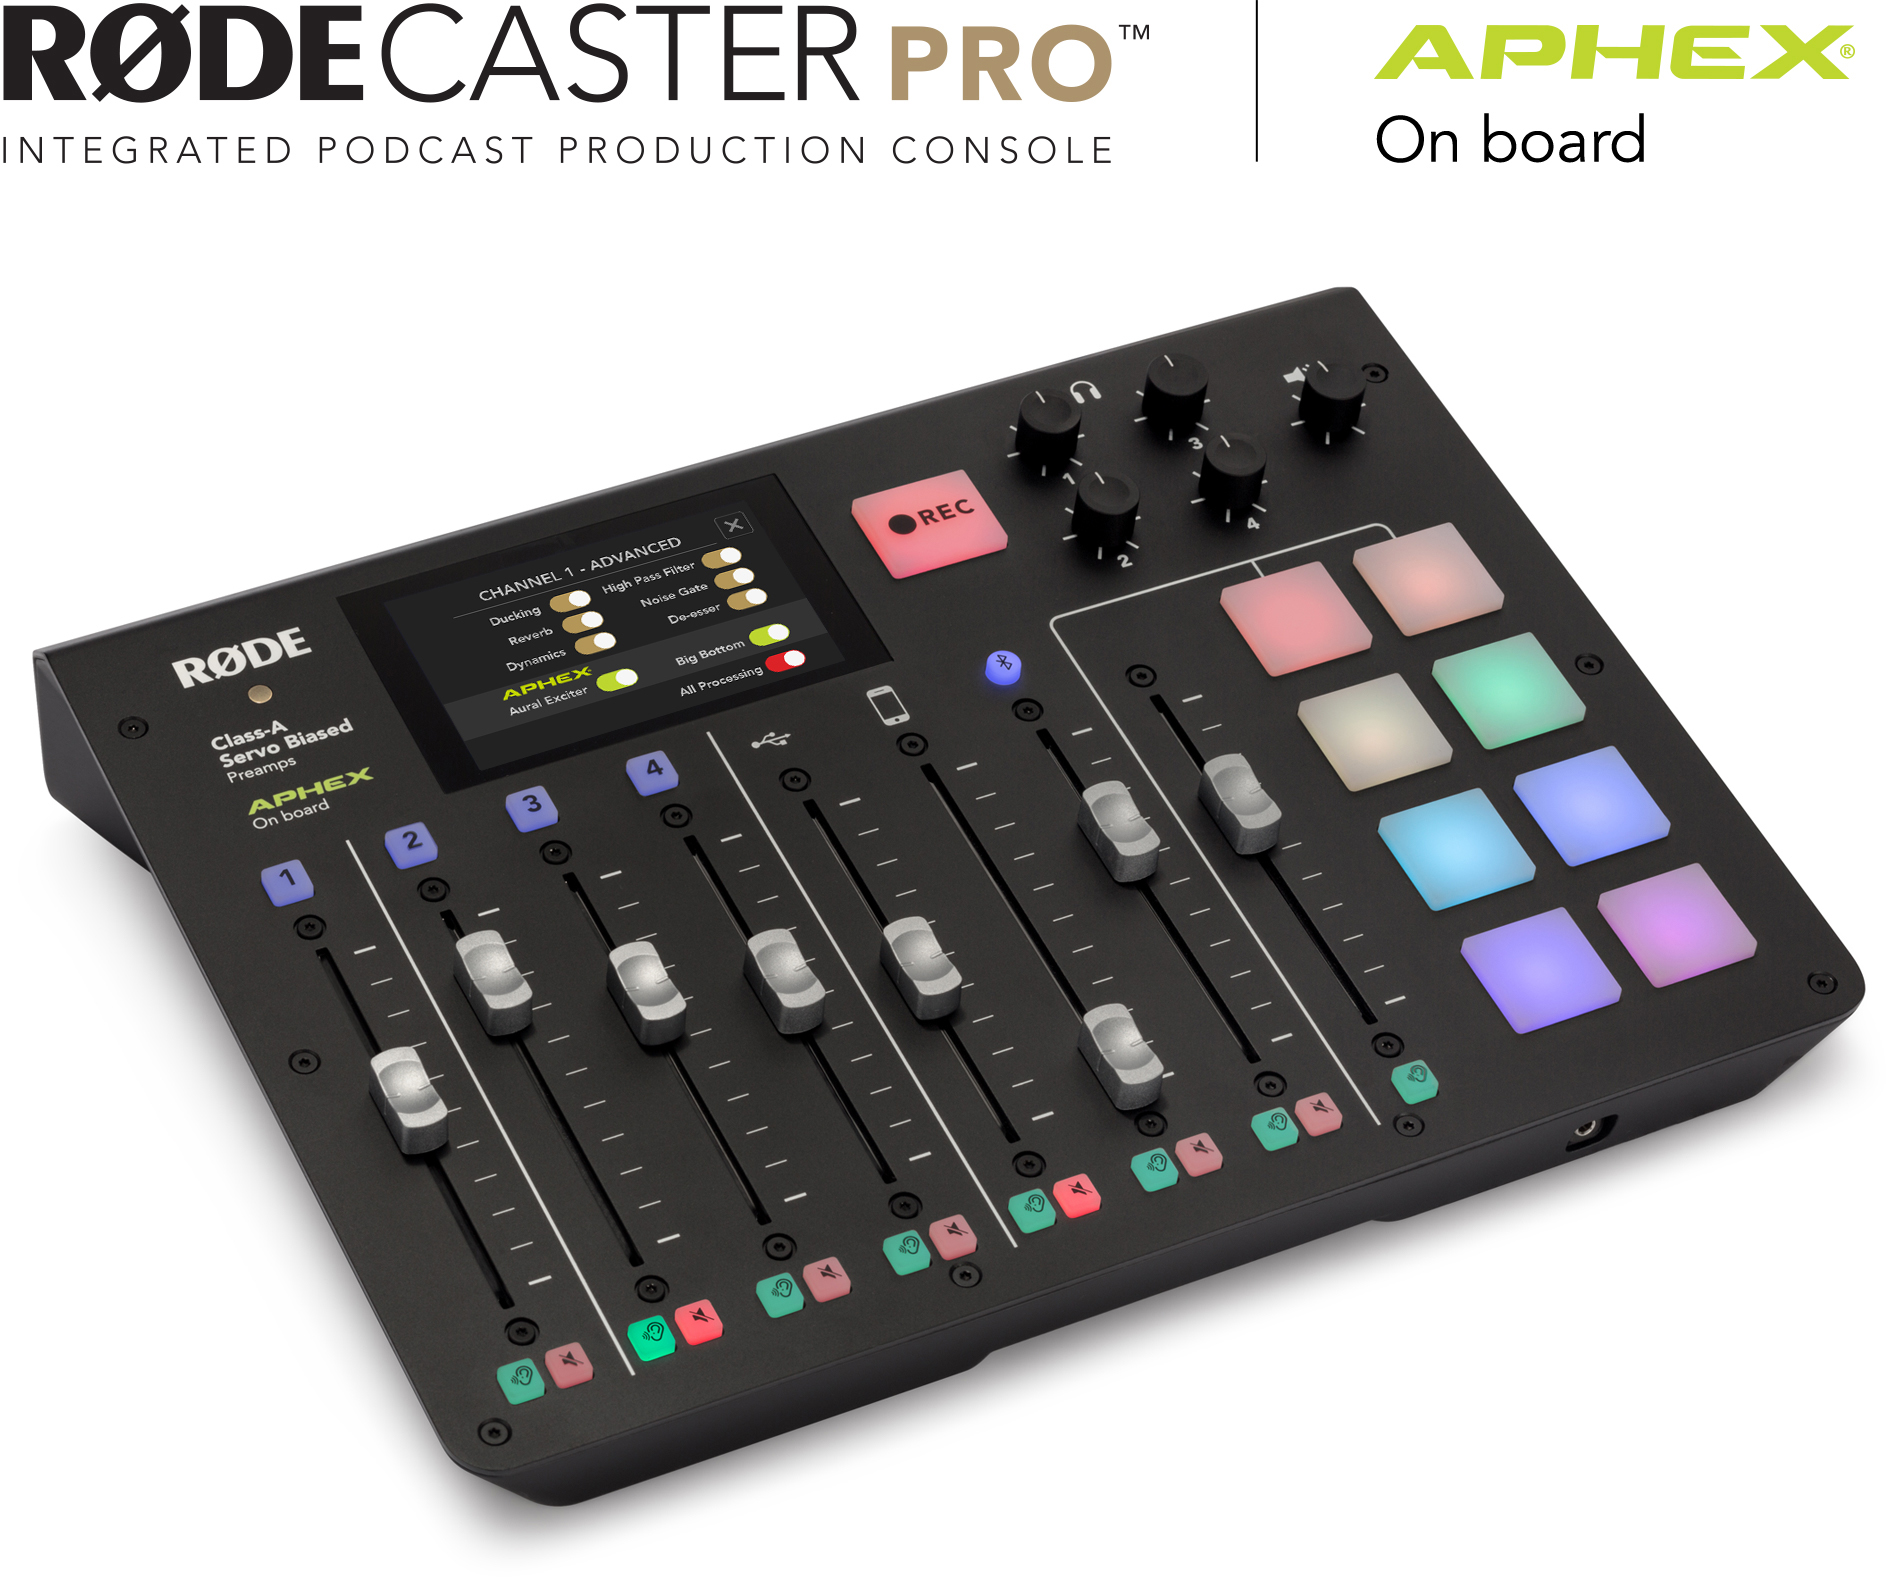 RØDECaster Pro with APHEX on board